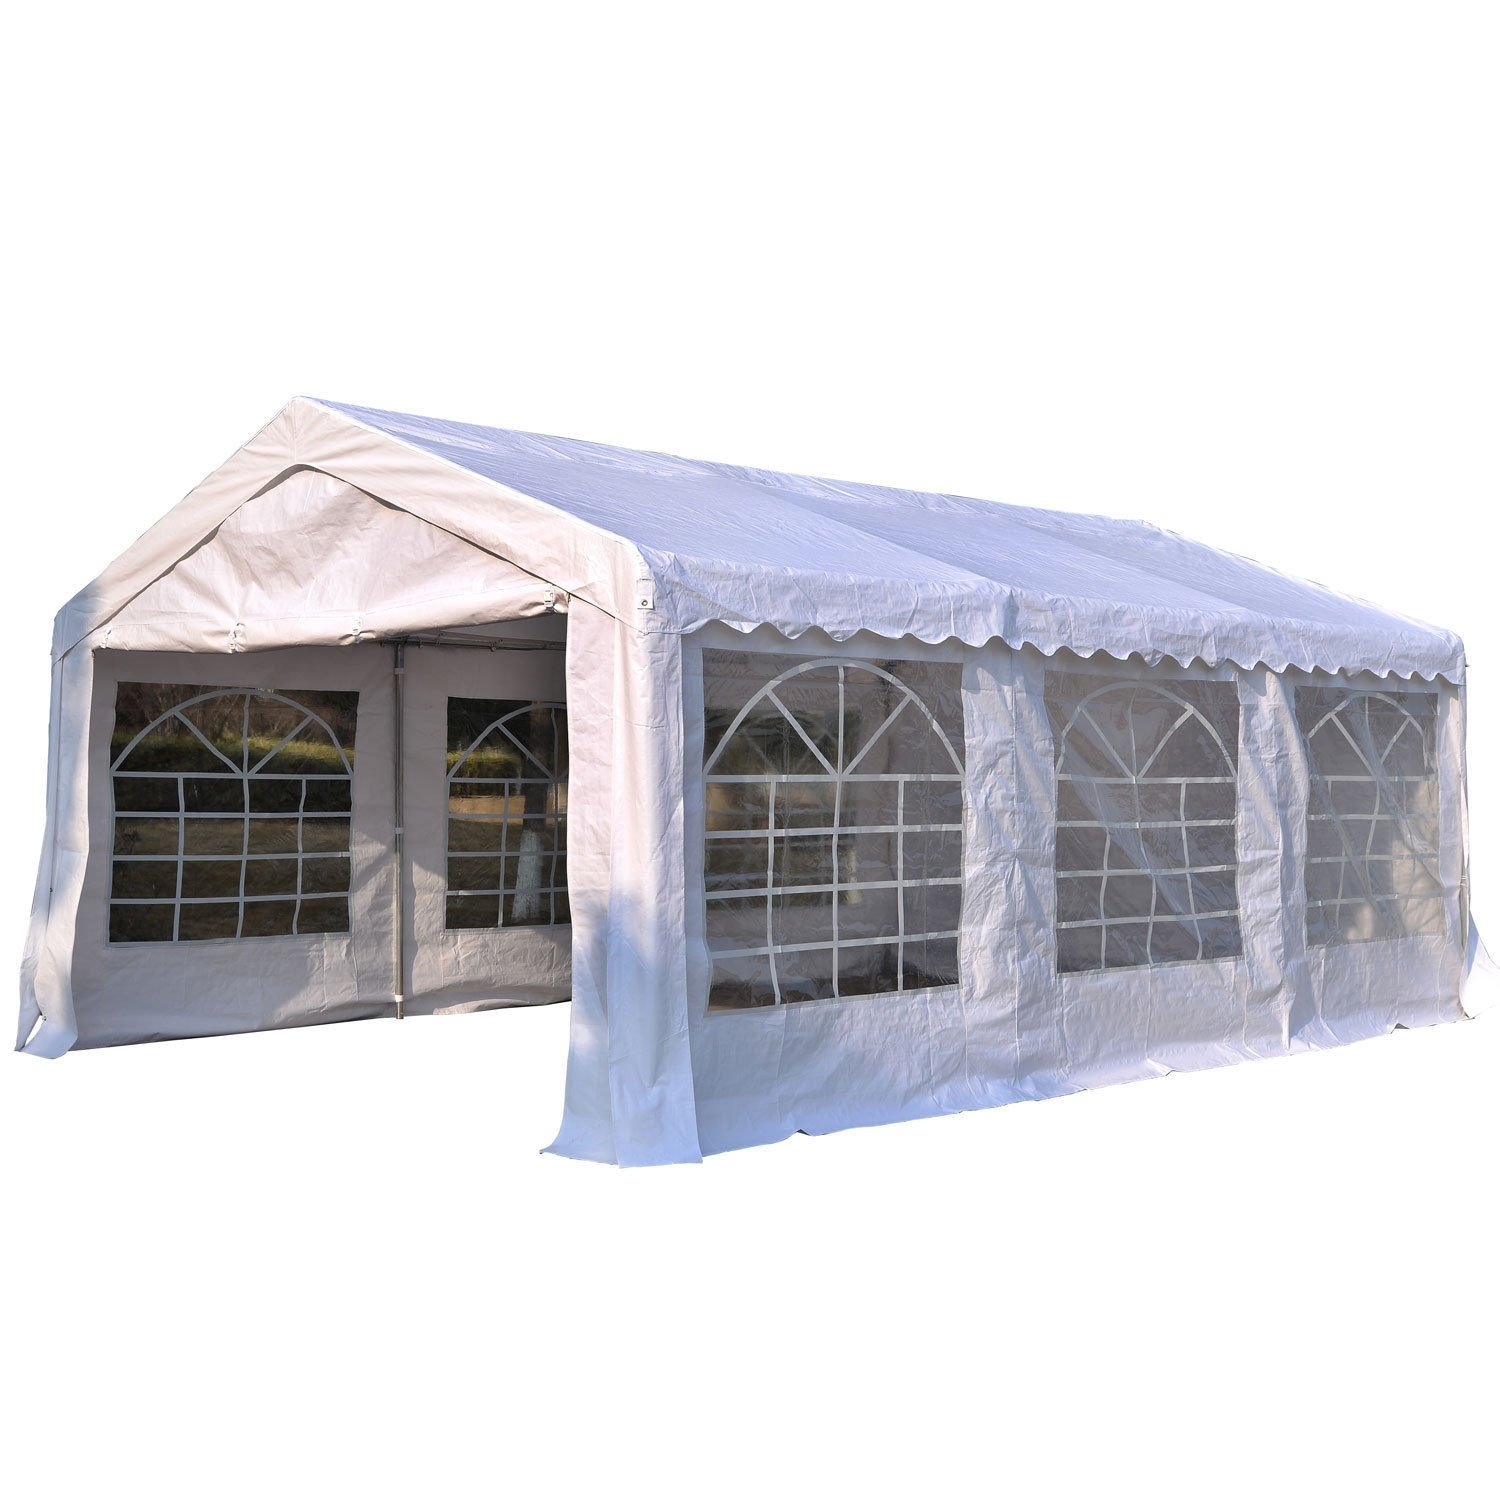 Outsunny Garden Gazebo Marquee Party Tent Wedding Portable Garage Carport shelter Car Canopy Outdoor Heavy Duty Steel Frame Waterproof Rot Resistant (4m x 4m) Sold by MHSTAR UK01-08070331